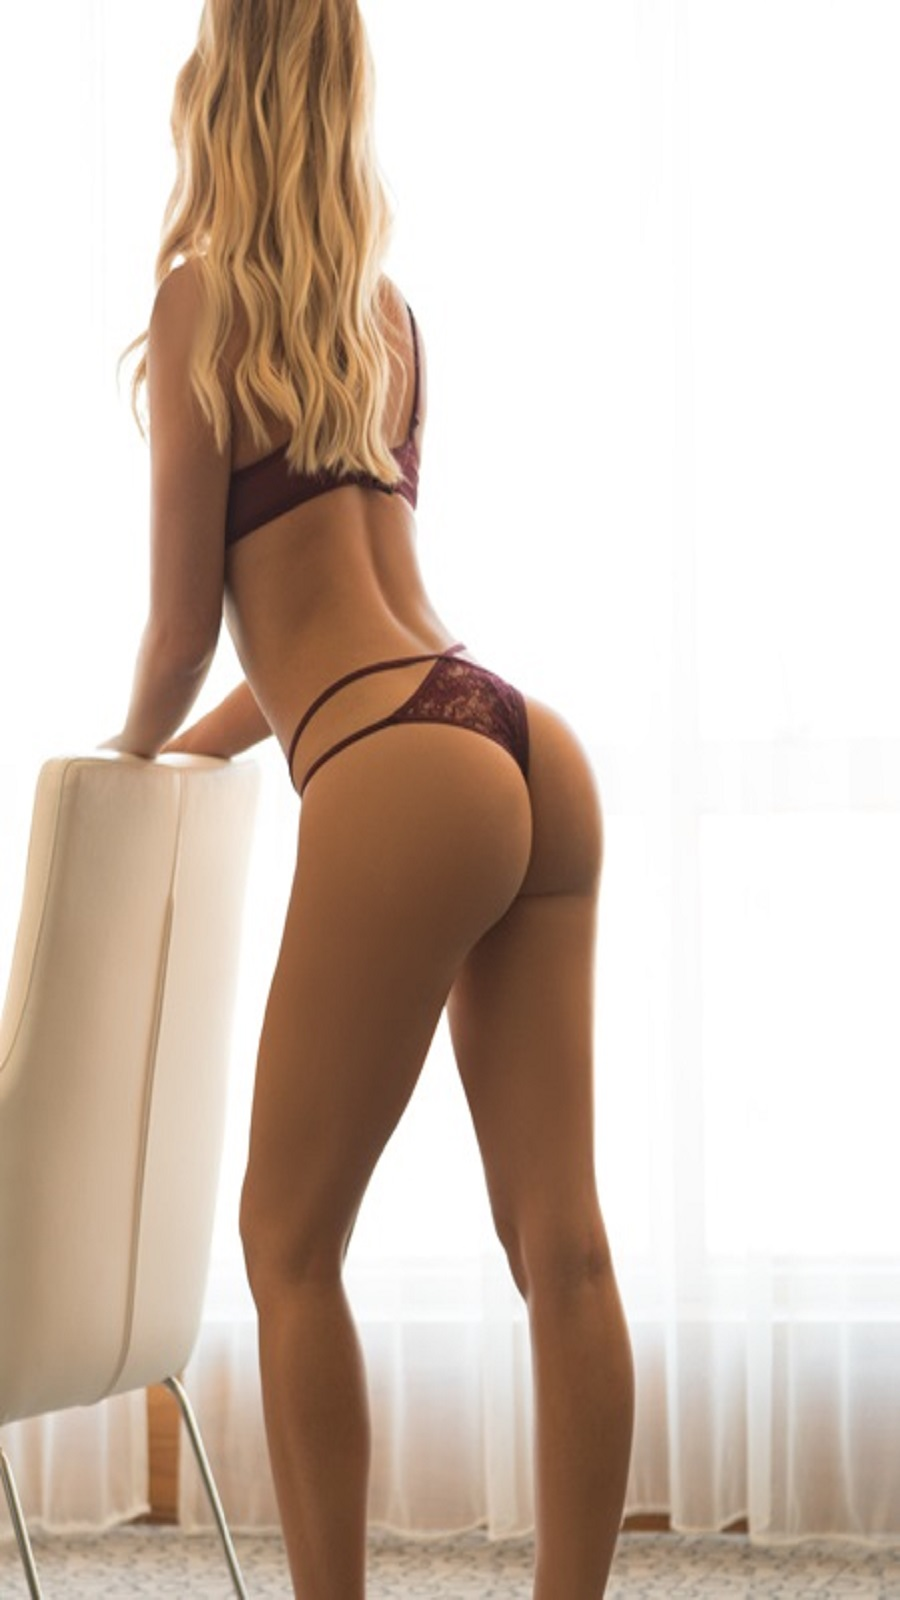 If you are looking for the perfect companion tonight give us a call on 07402724742 to book Anastasia for the best night of your life.